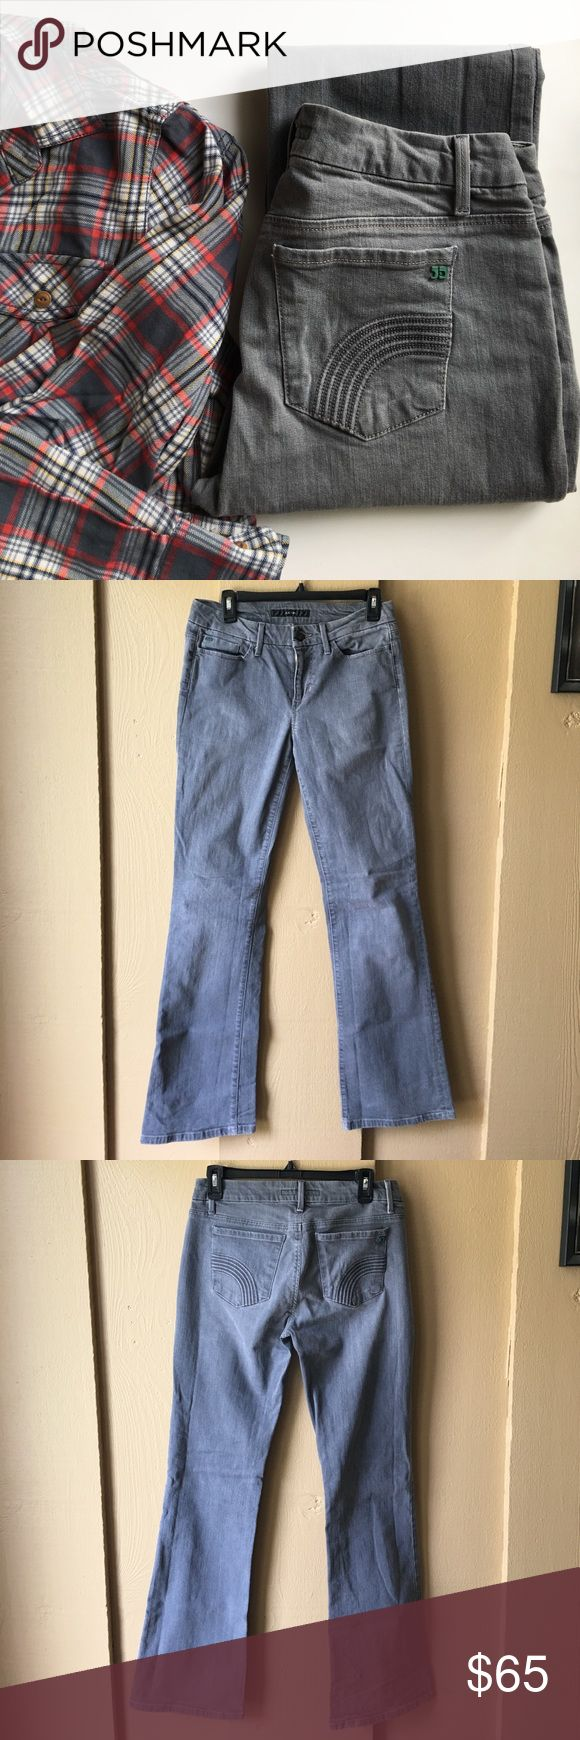 """Joe's Jeans muse bootcut jeans Joe's muse bootcut jeans. Size 29. Excellent condition. Medium gray wash is called """"Angelica"""". Cute detail on back pockets. Inseam is approx 33 inches. Waist measures approx 15 inches across. 98% cotton, 2% elastane. Joe's Jeans Jeans Boot Cut"""